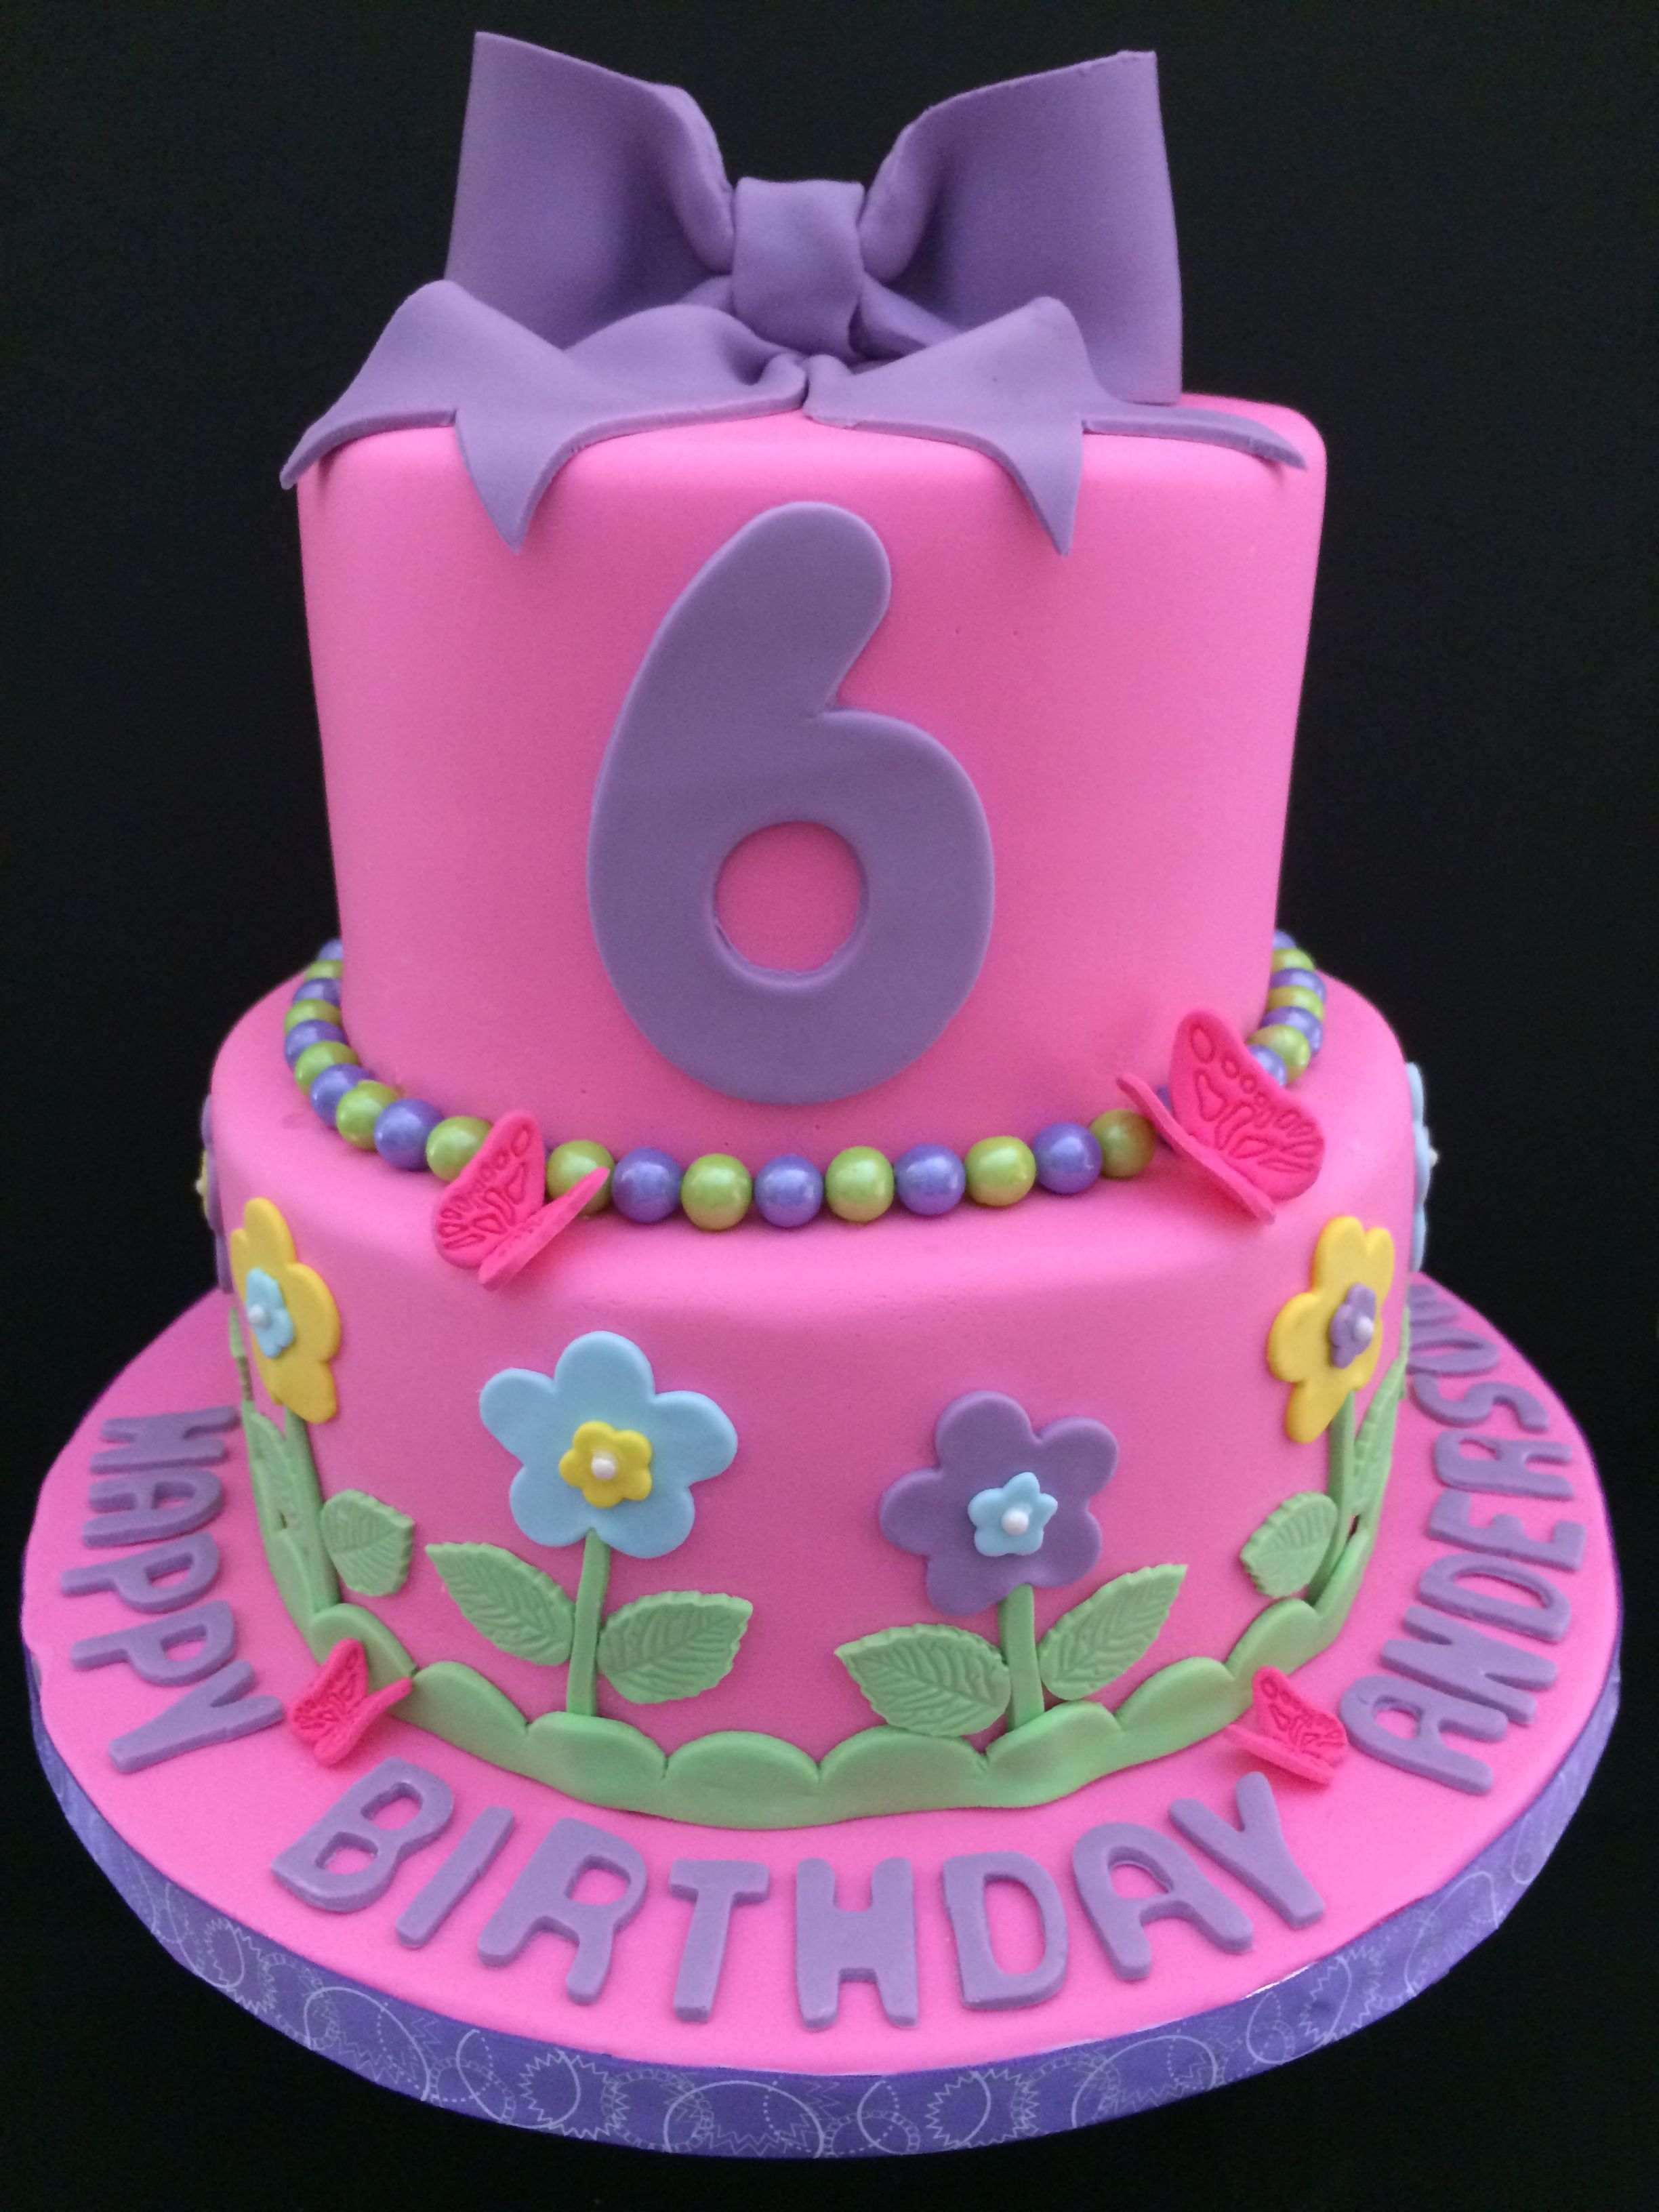 Birthday Cake For A 6 Year Old Girl 6th Birthday Cakes Pink